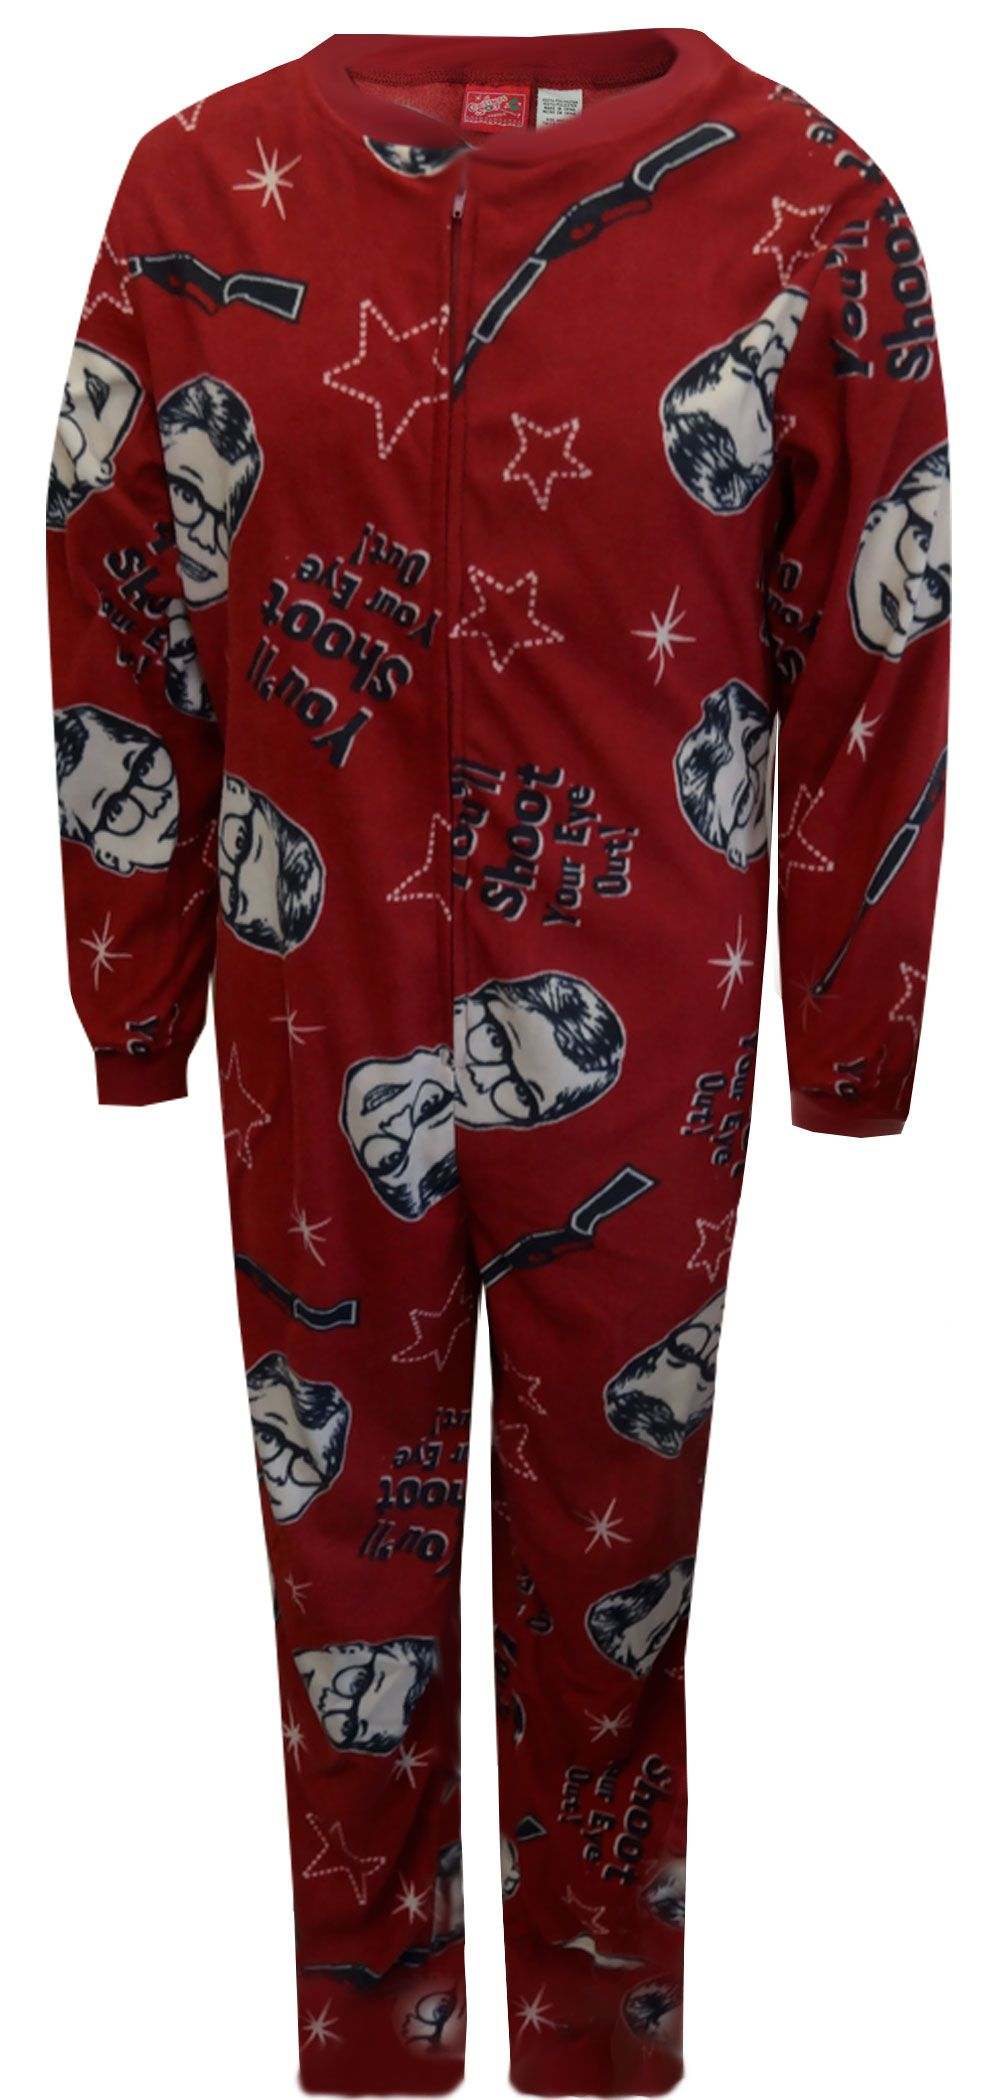 A Christmas Story Shoot Your Eye Out Union Suit Pajama | Union suit